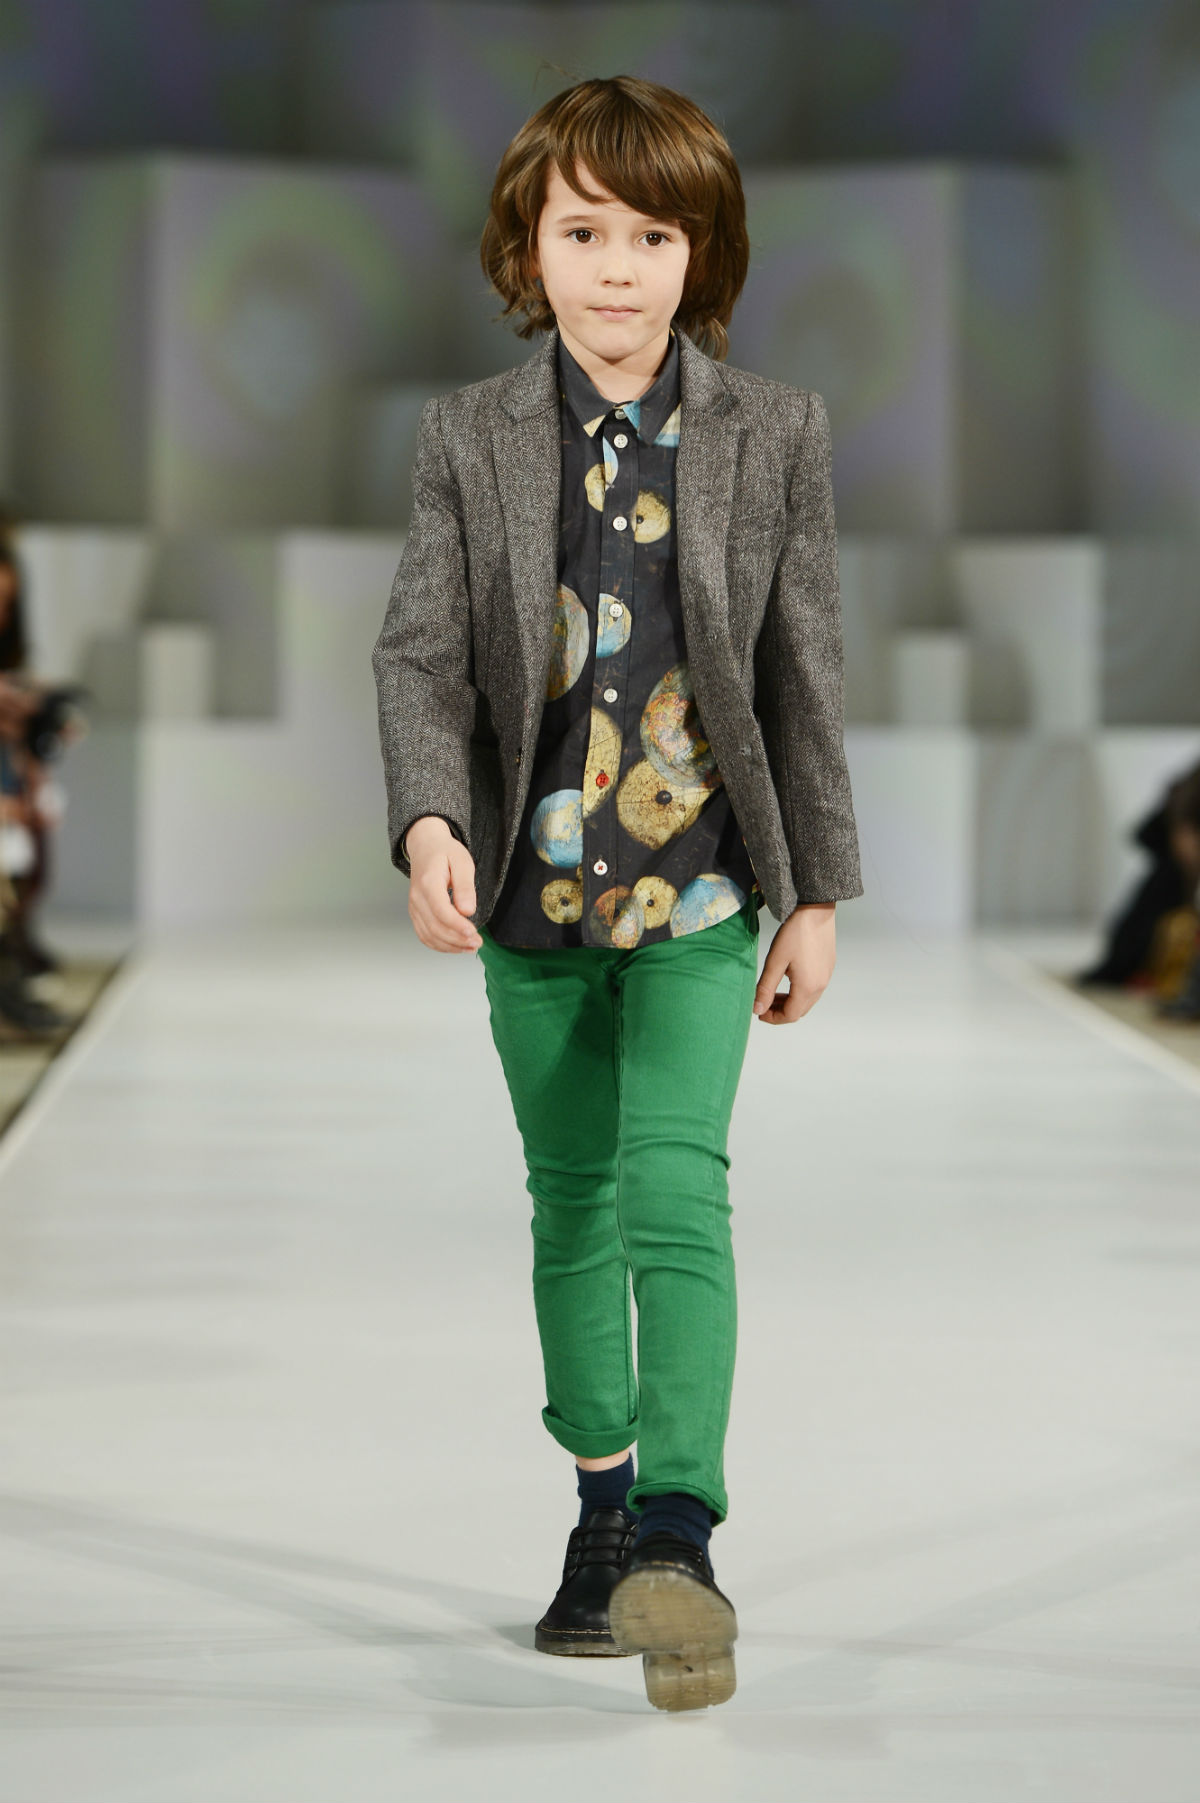 <span>Muy cool el look de Paul Smith Junior, con chupines de color intenso, camisa estampada y blazer espigado.</span></p>